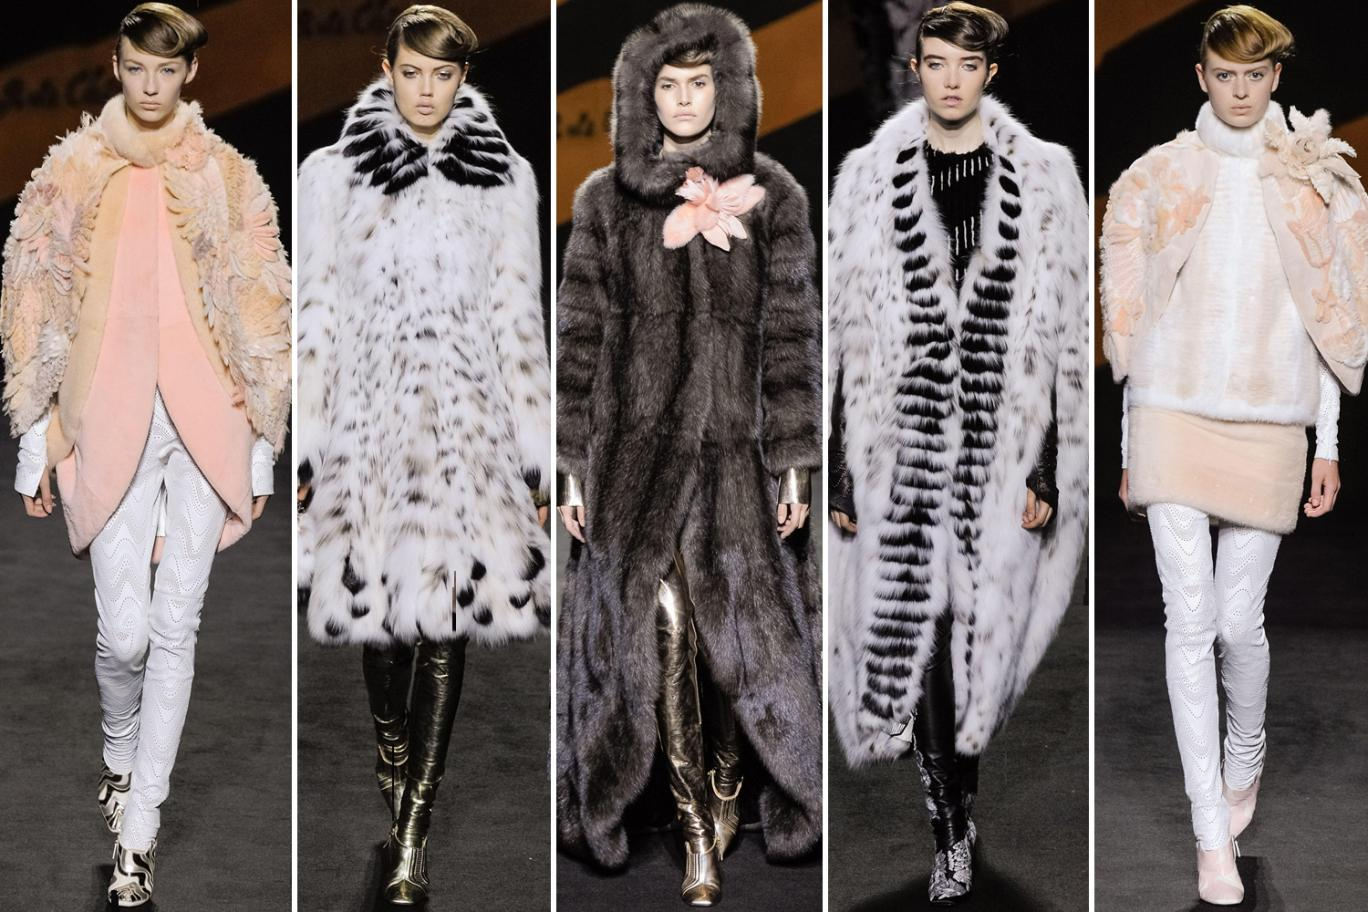 They've gone fur enough: the abuse of animals sanctioned by the fashion industry